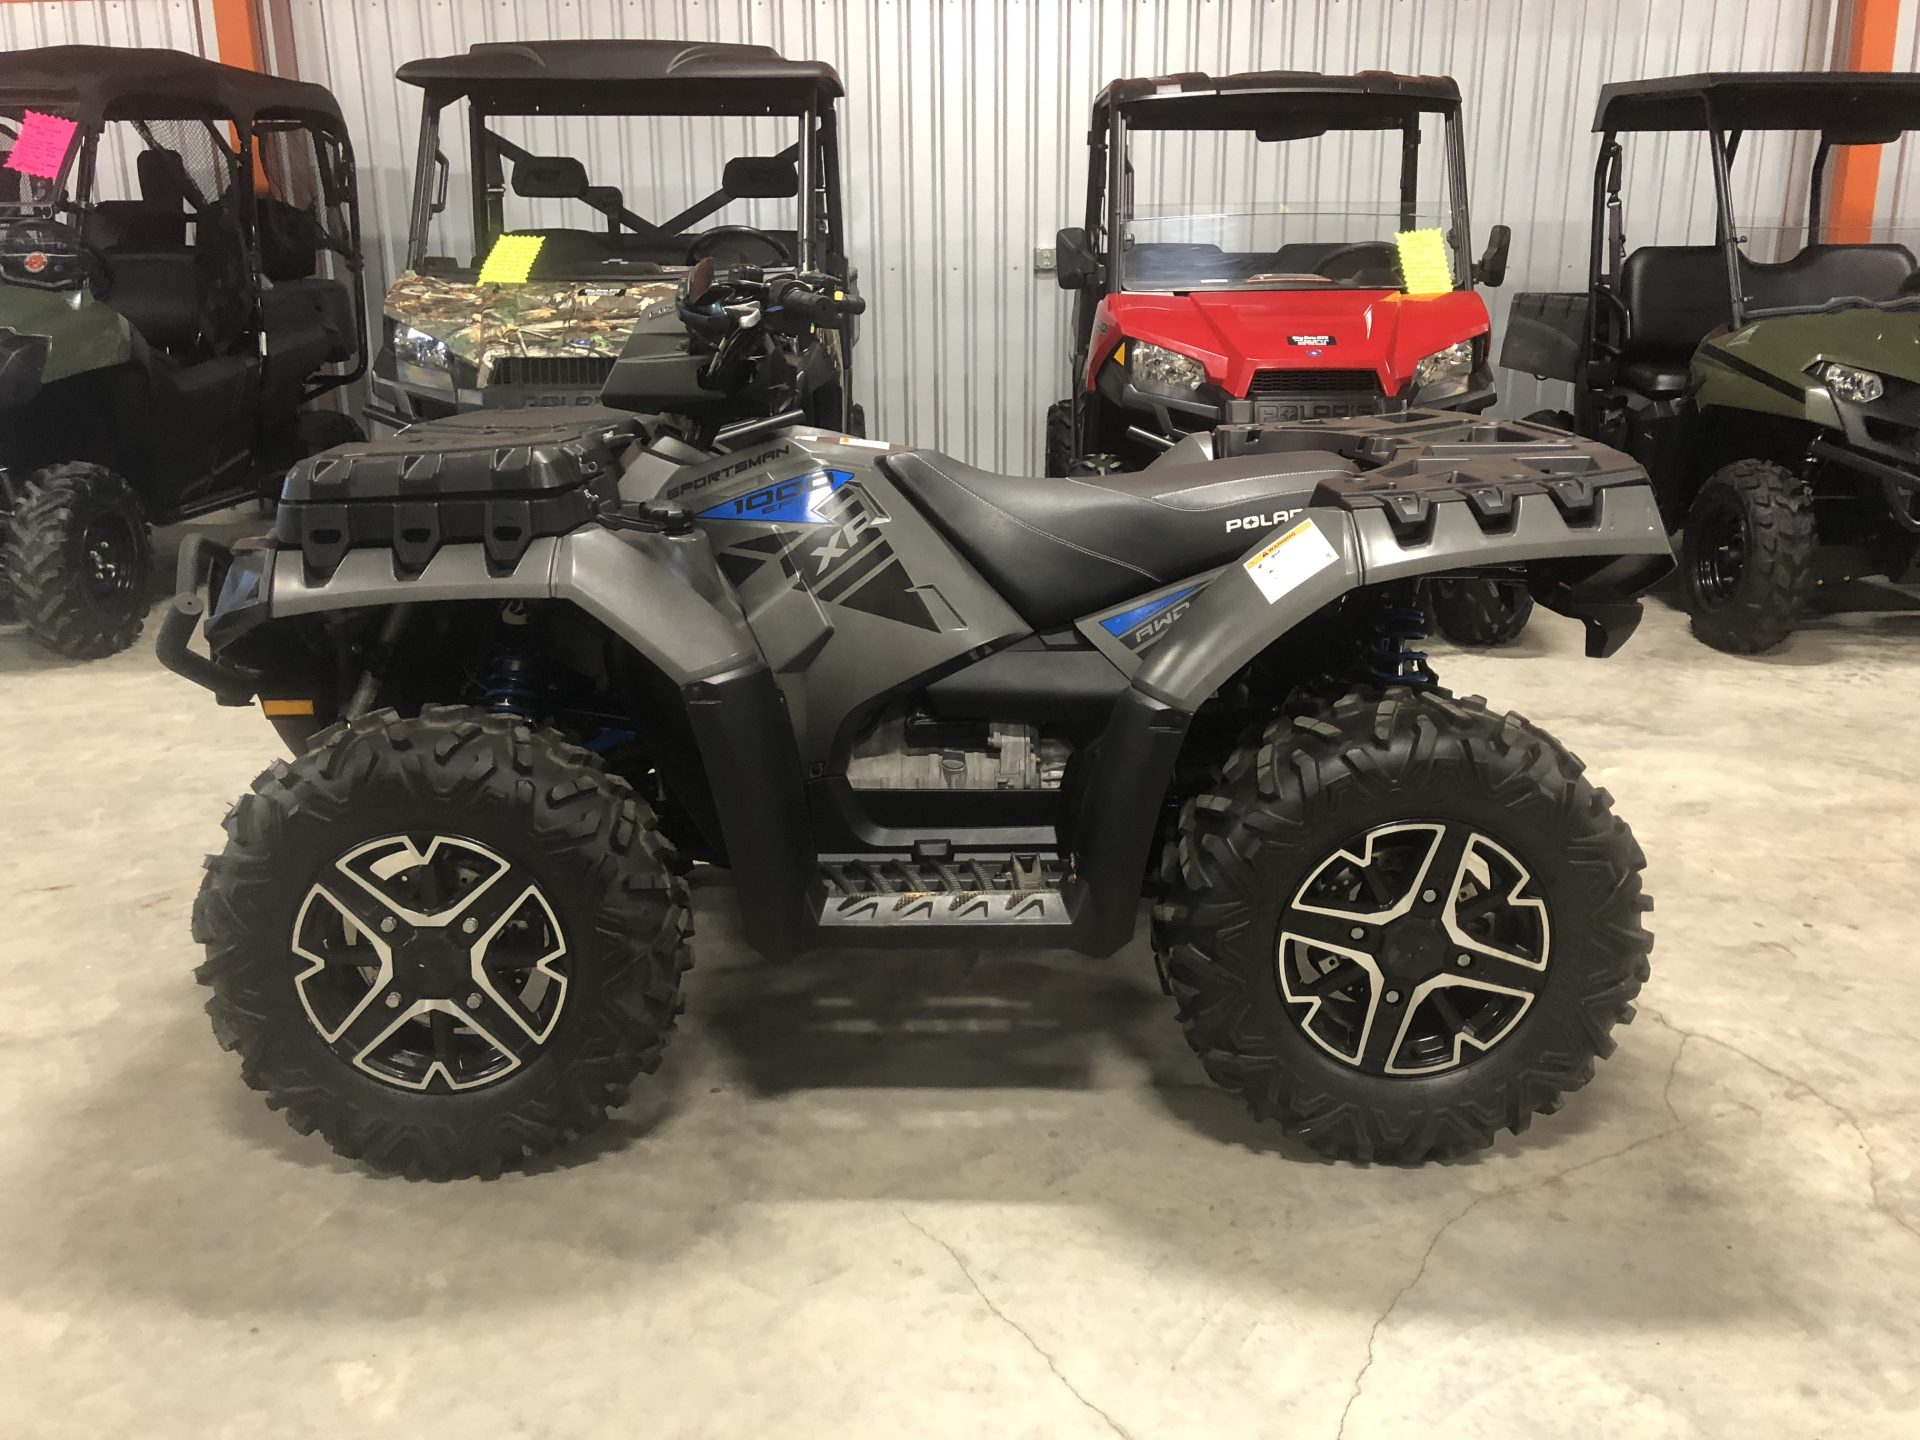 2015 Polaris Sportsman 1000 LE Image